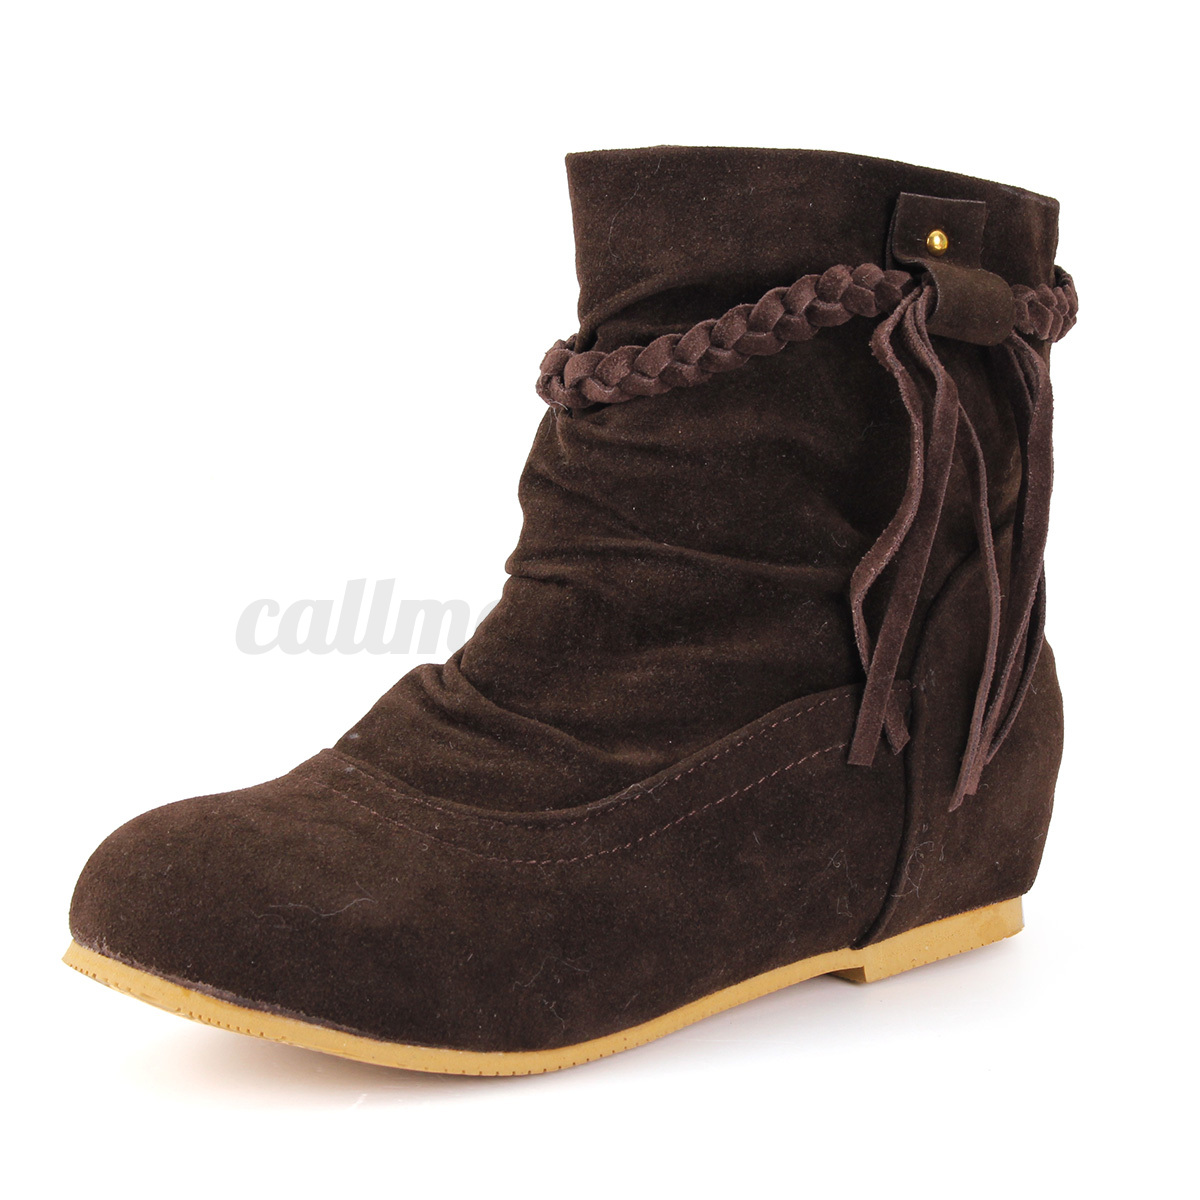 uk 2017 new flat suede tassels ankle boots fringes